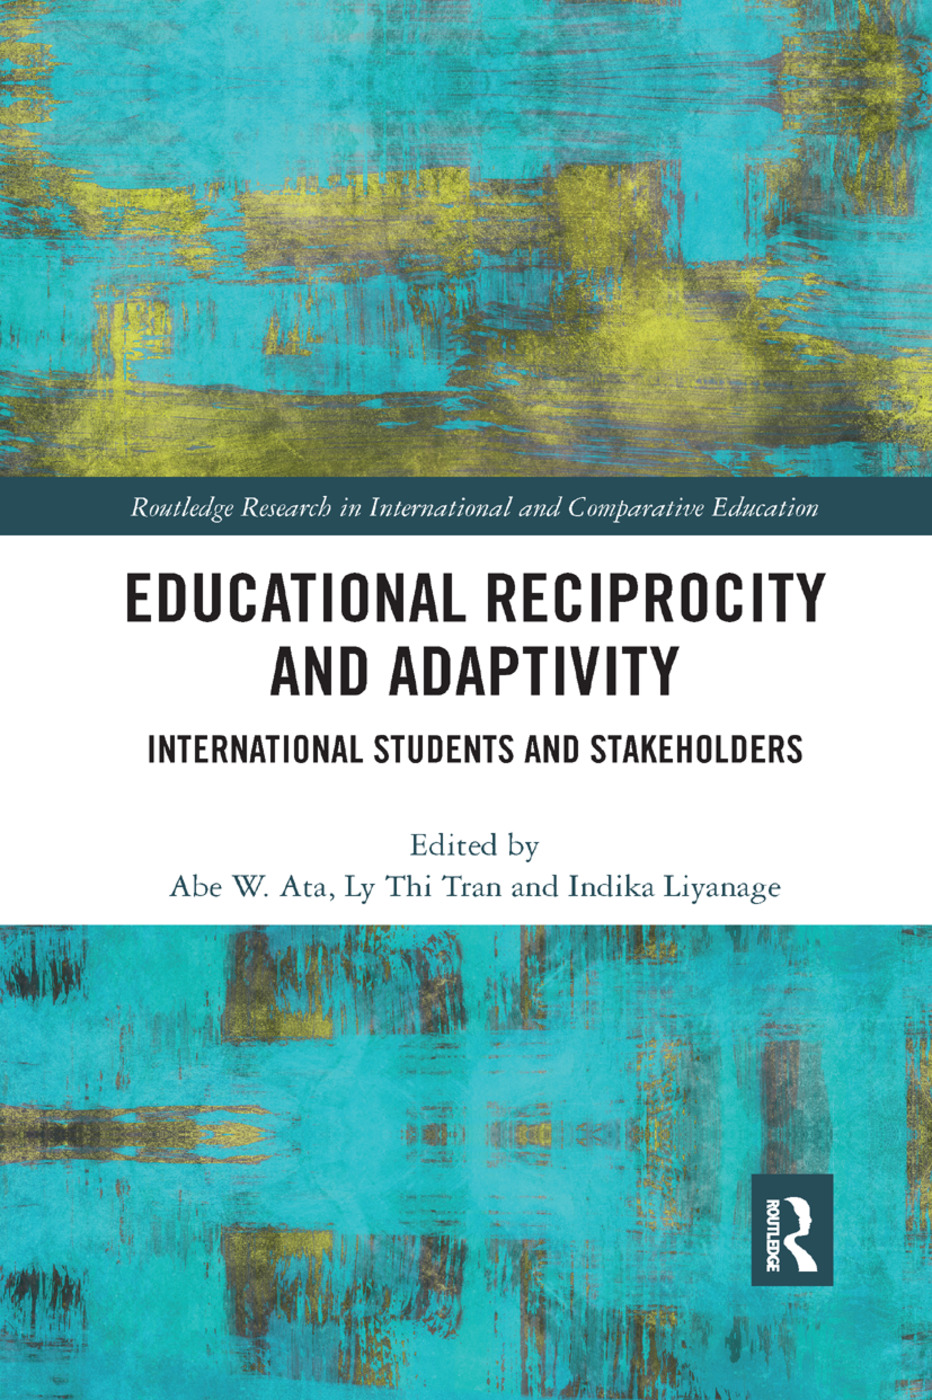 Educational Reciprocity and Adaptivity: International Students and Stakeholders book cover